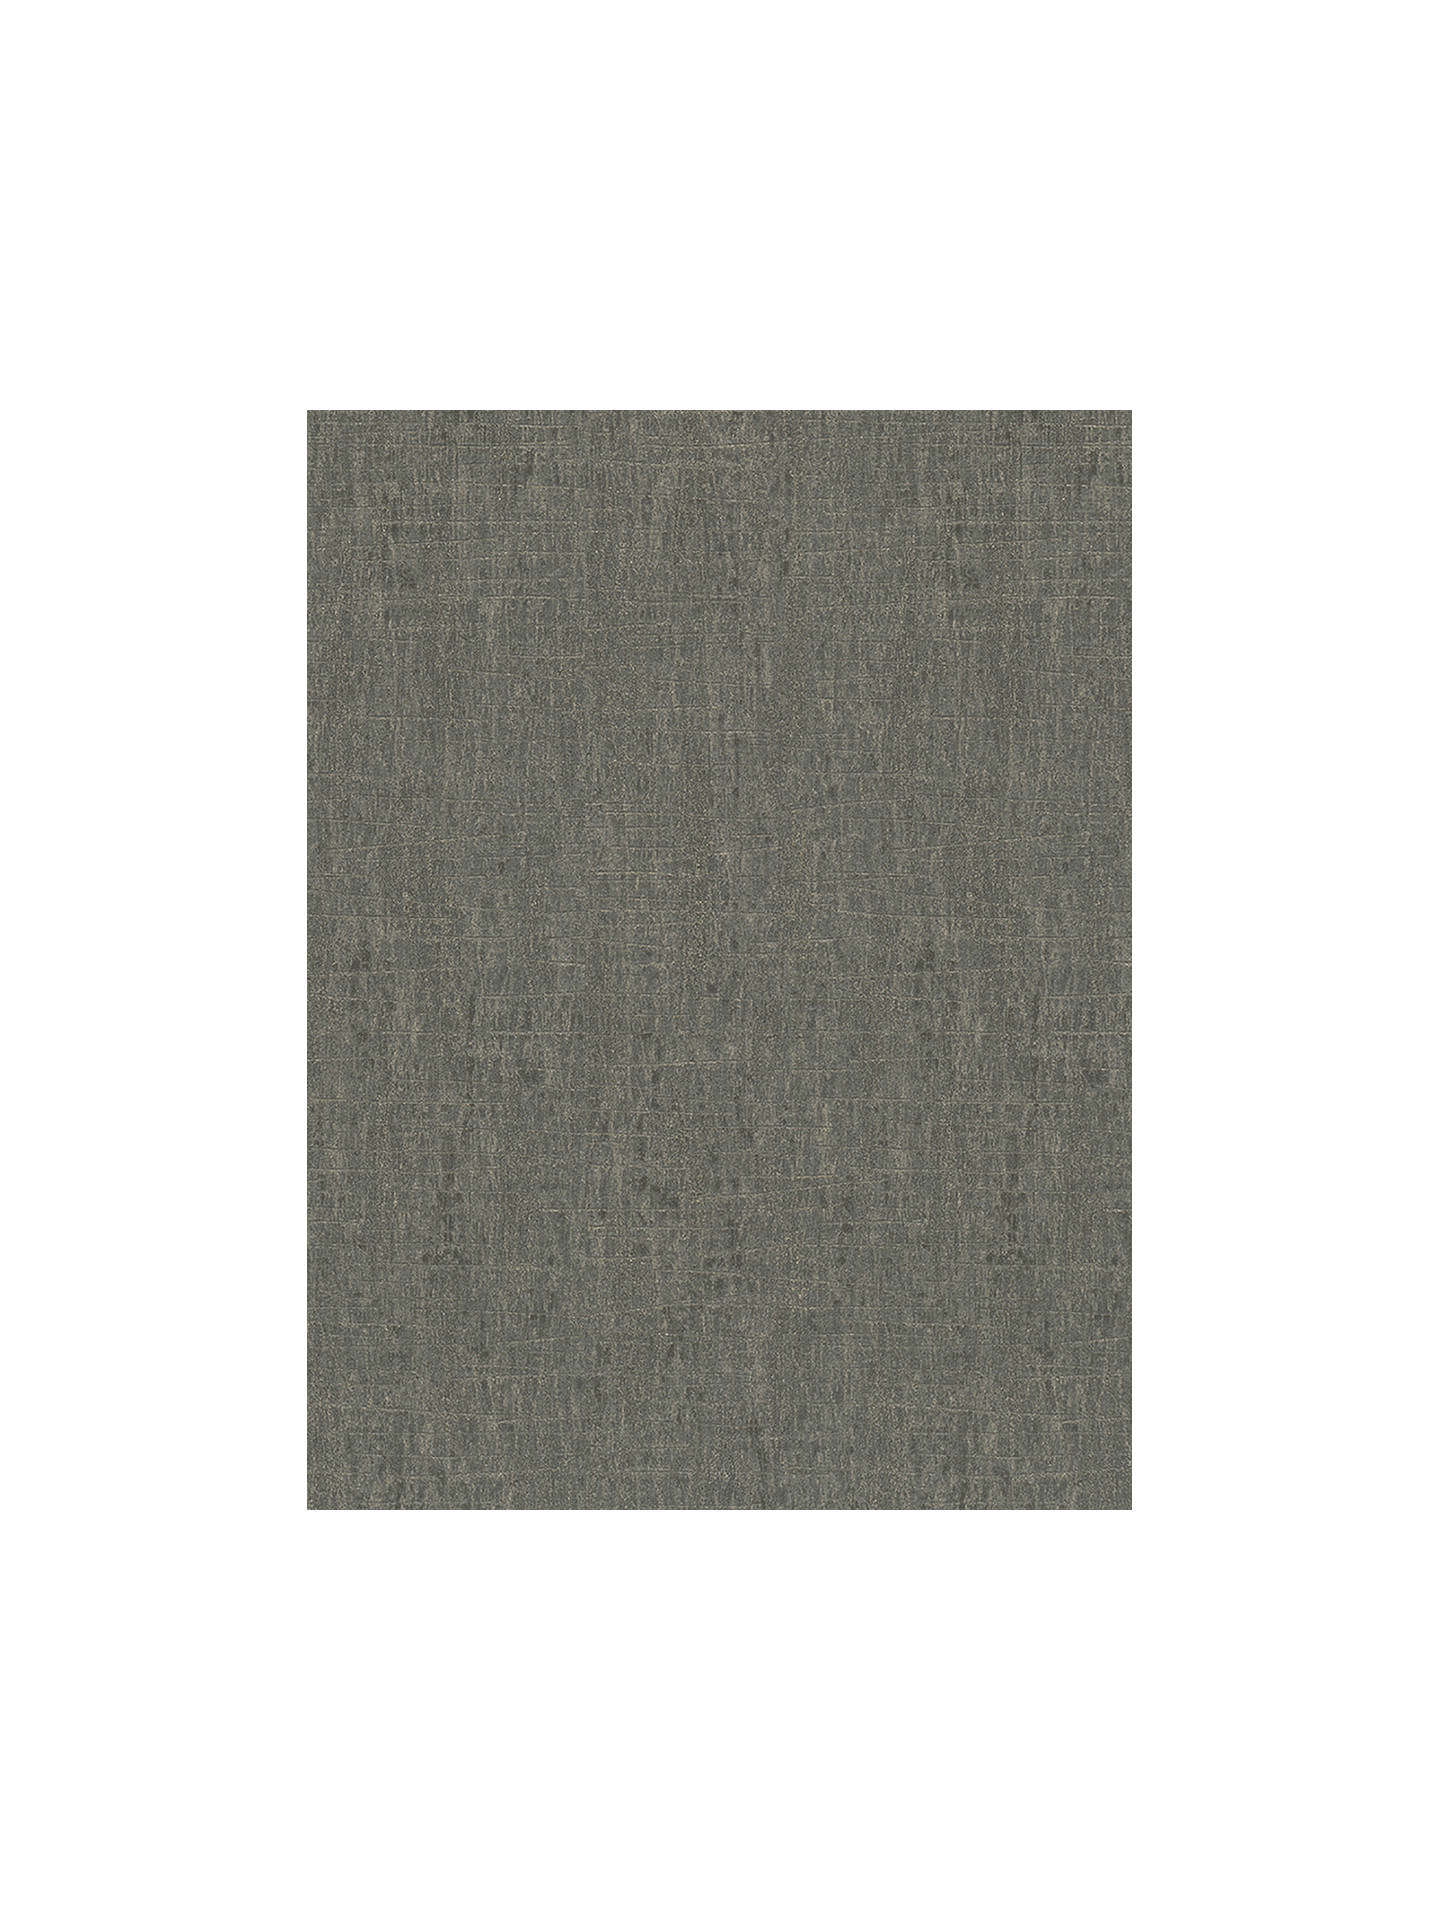 BuyGalerie Loam Wallpaper, WP59339 Online at johnlewis.com